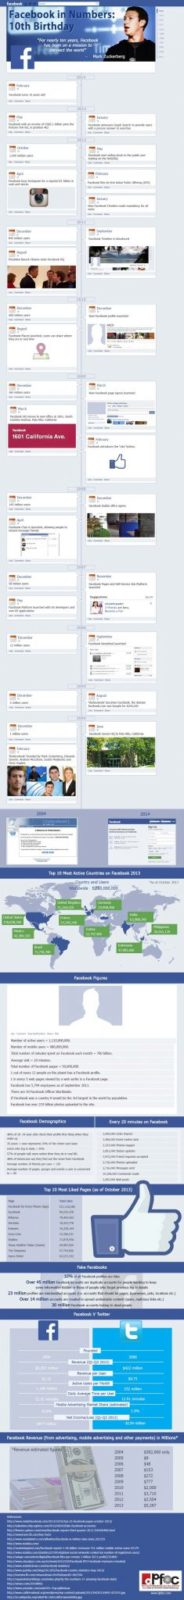 100 Facebook Stats   And Facts - Infographic